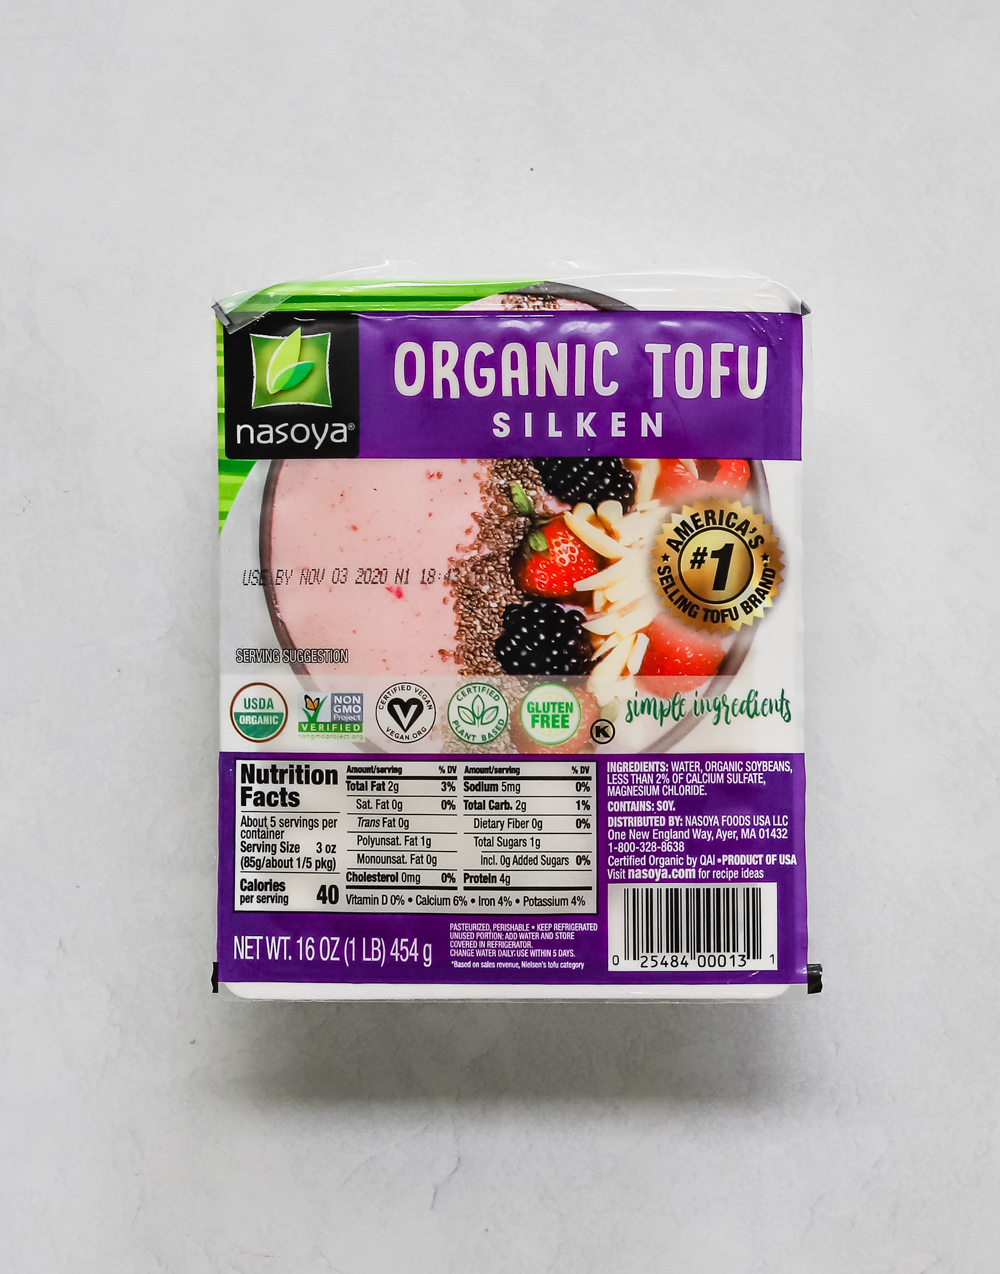 Nasoya silken tofu package on a white surface.